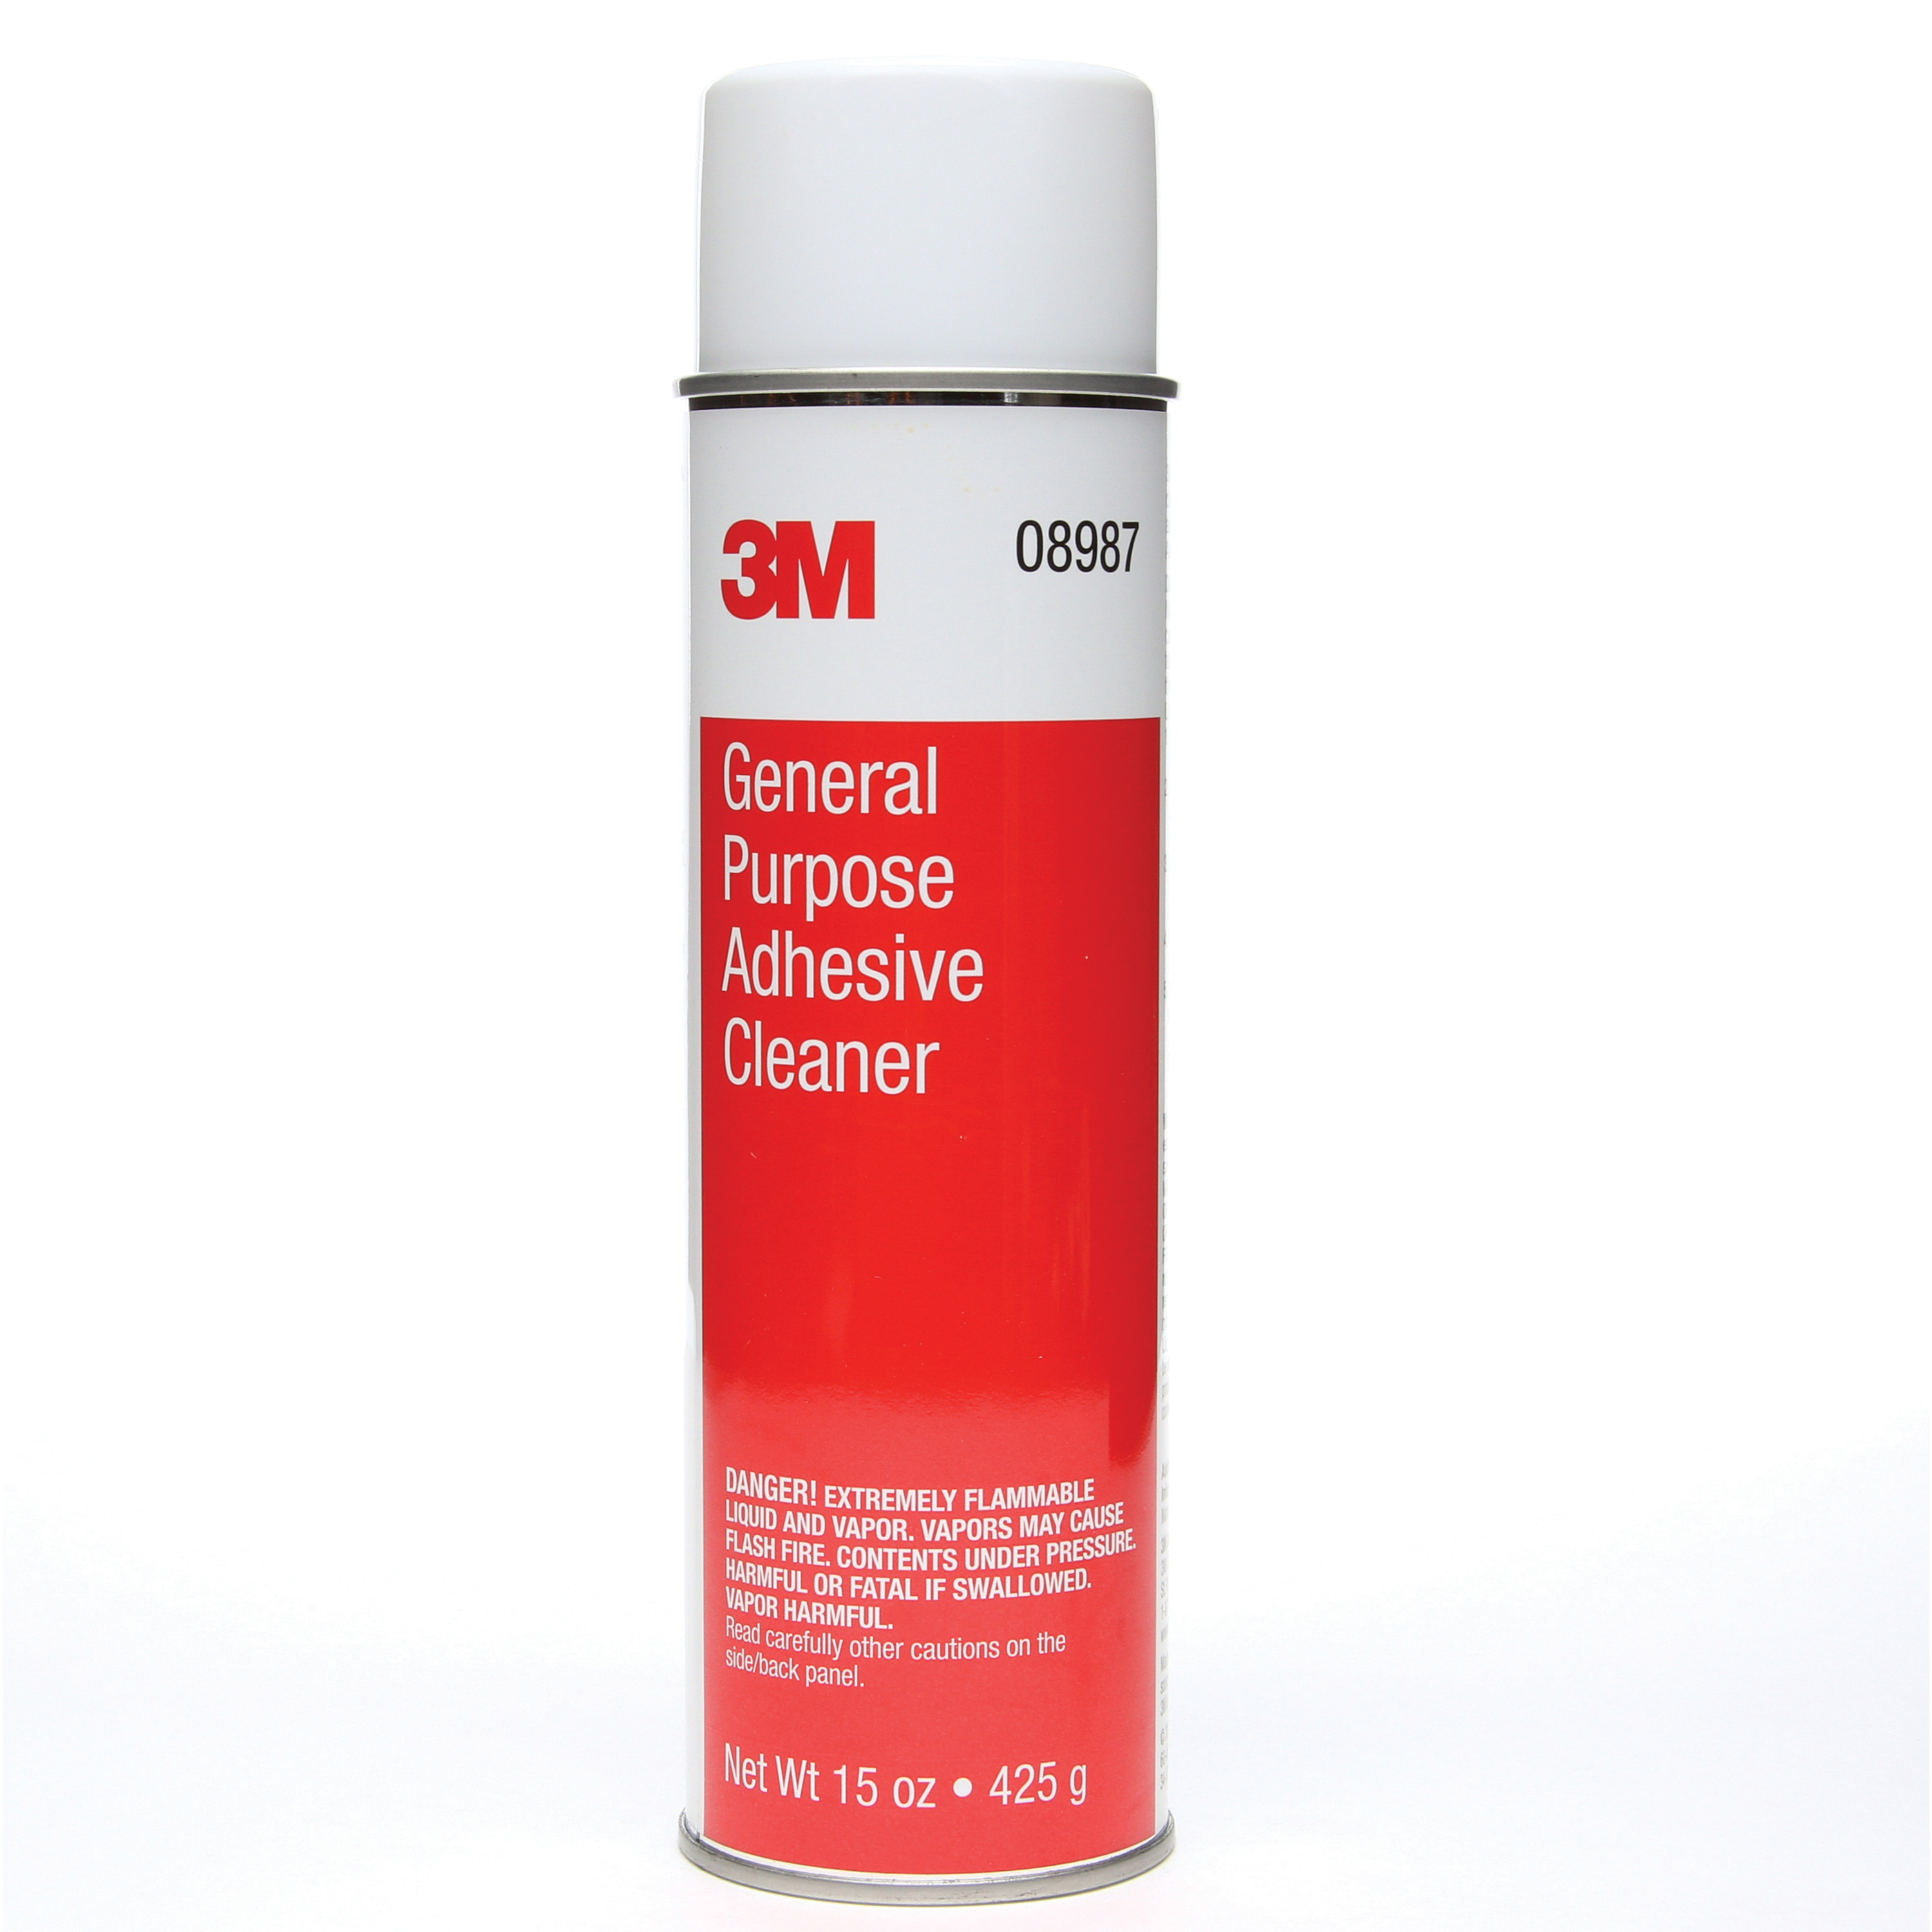 3M™ 051135-08987 General Purpose Adhesive Cleaner, 425 g Aerosol Can, Solvent Odor/Scent, Clear, Liquid Form